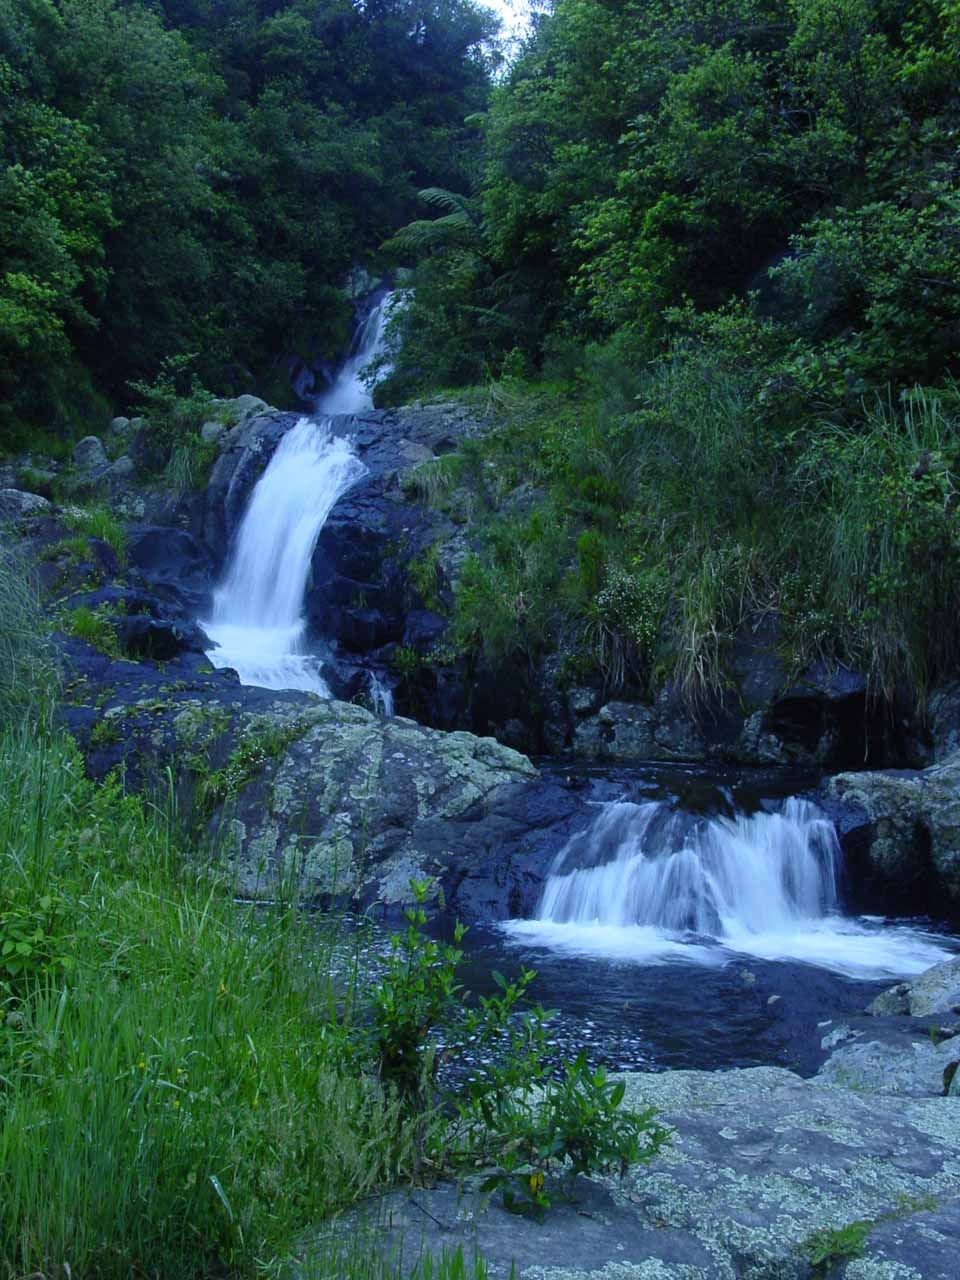 First look at the Upper Kaiate Falls